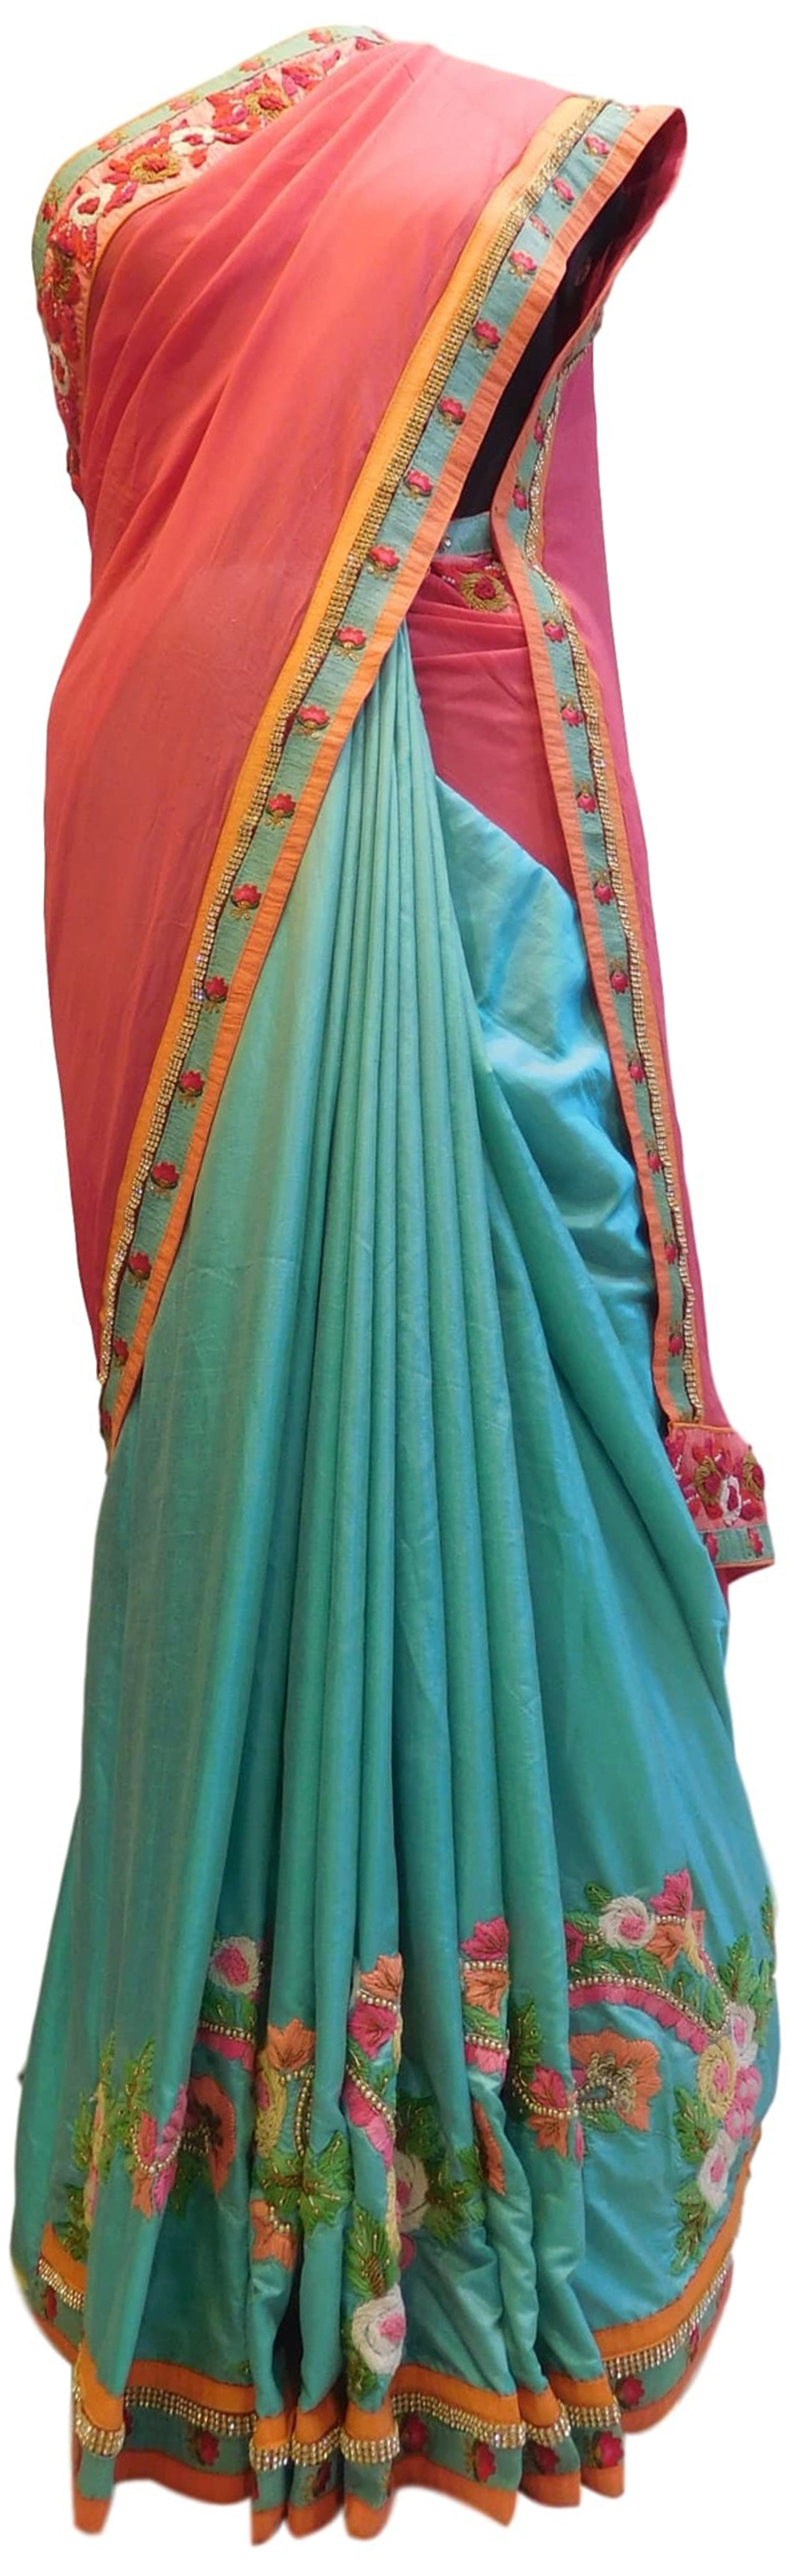 Gajari & Turquoise Designer Georgette (Viscos) & Silk Hand Embroidery Zari Thread Bullion Pearl Beads Stone Work Saree Sari